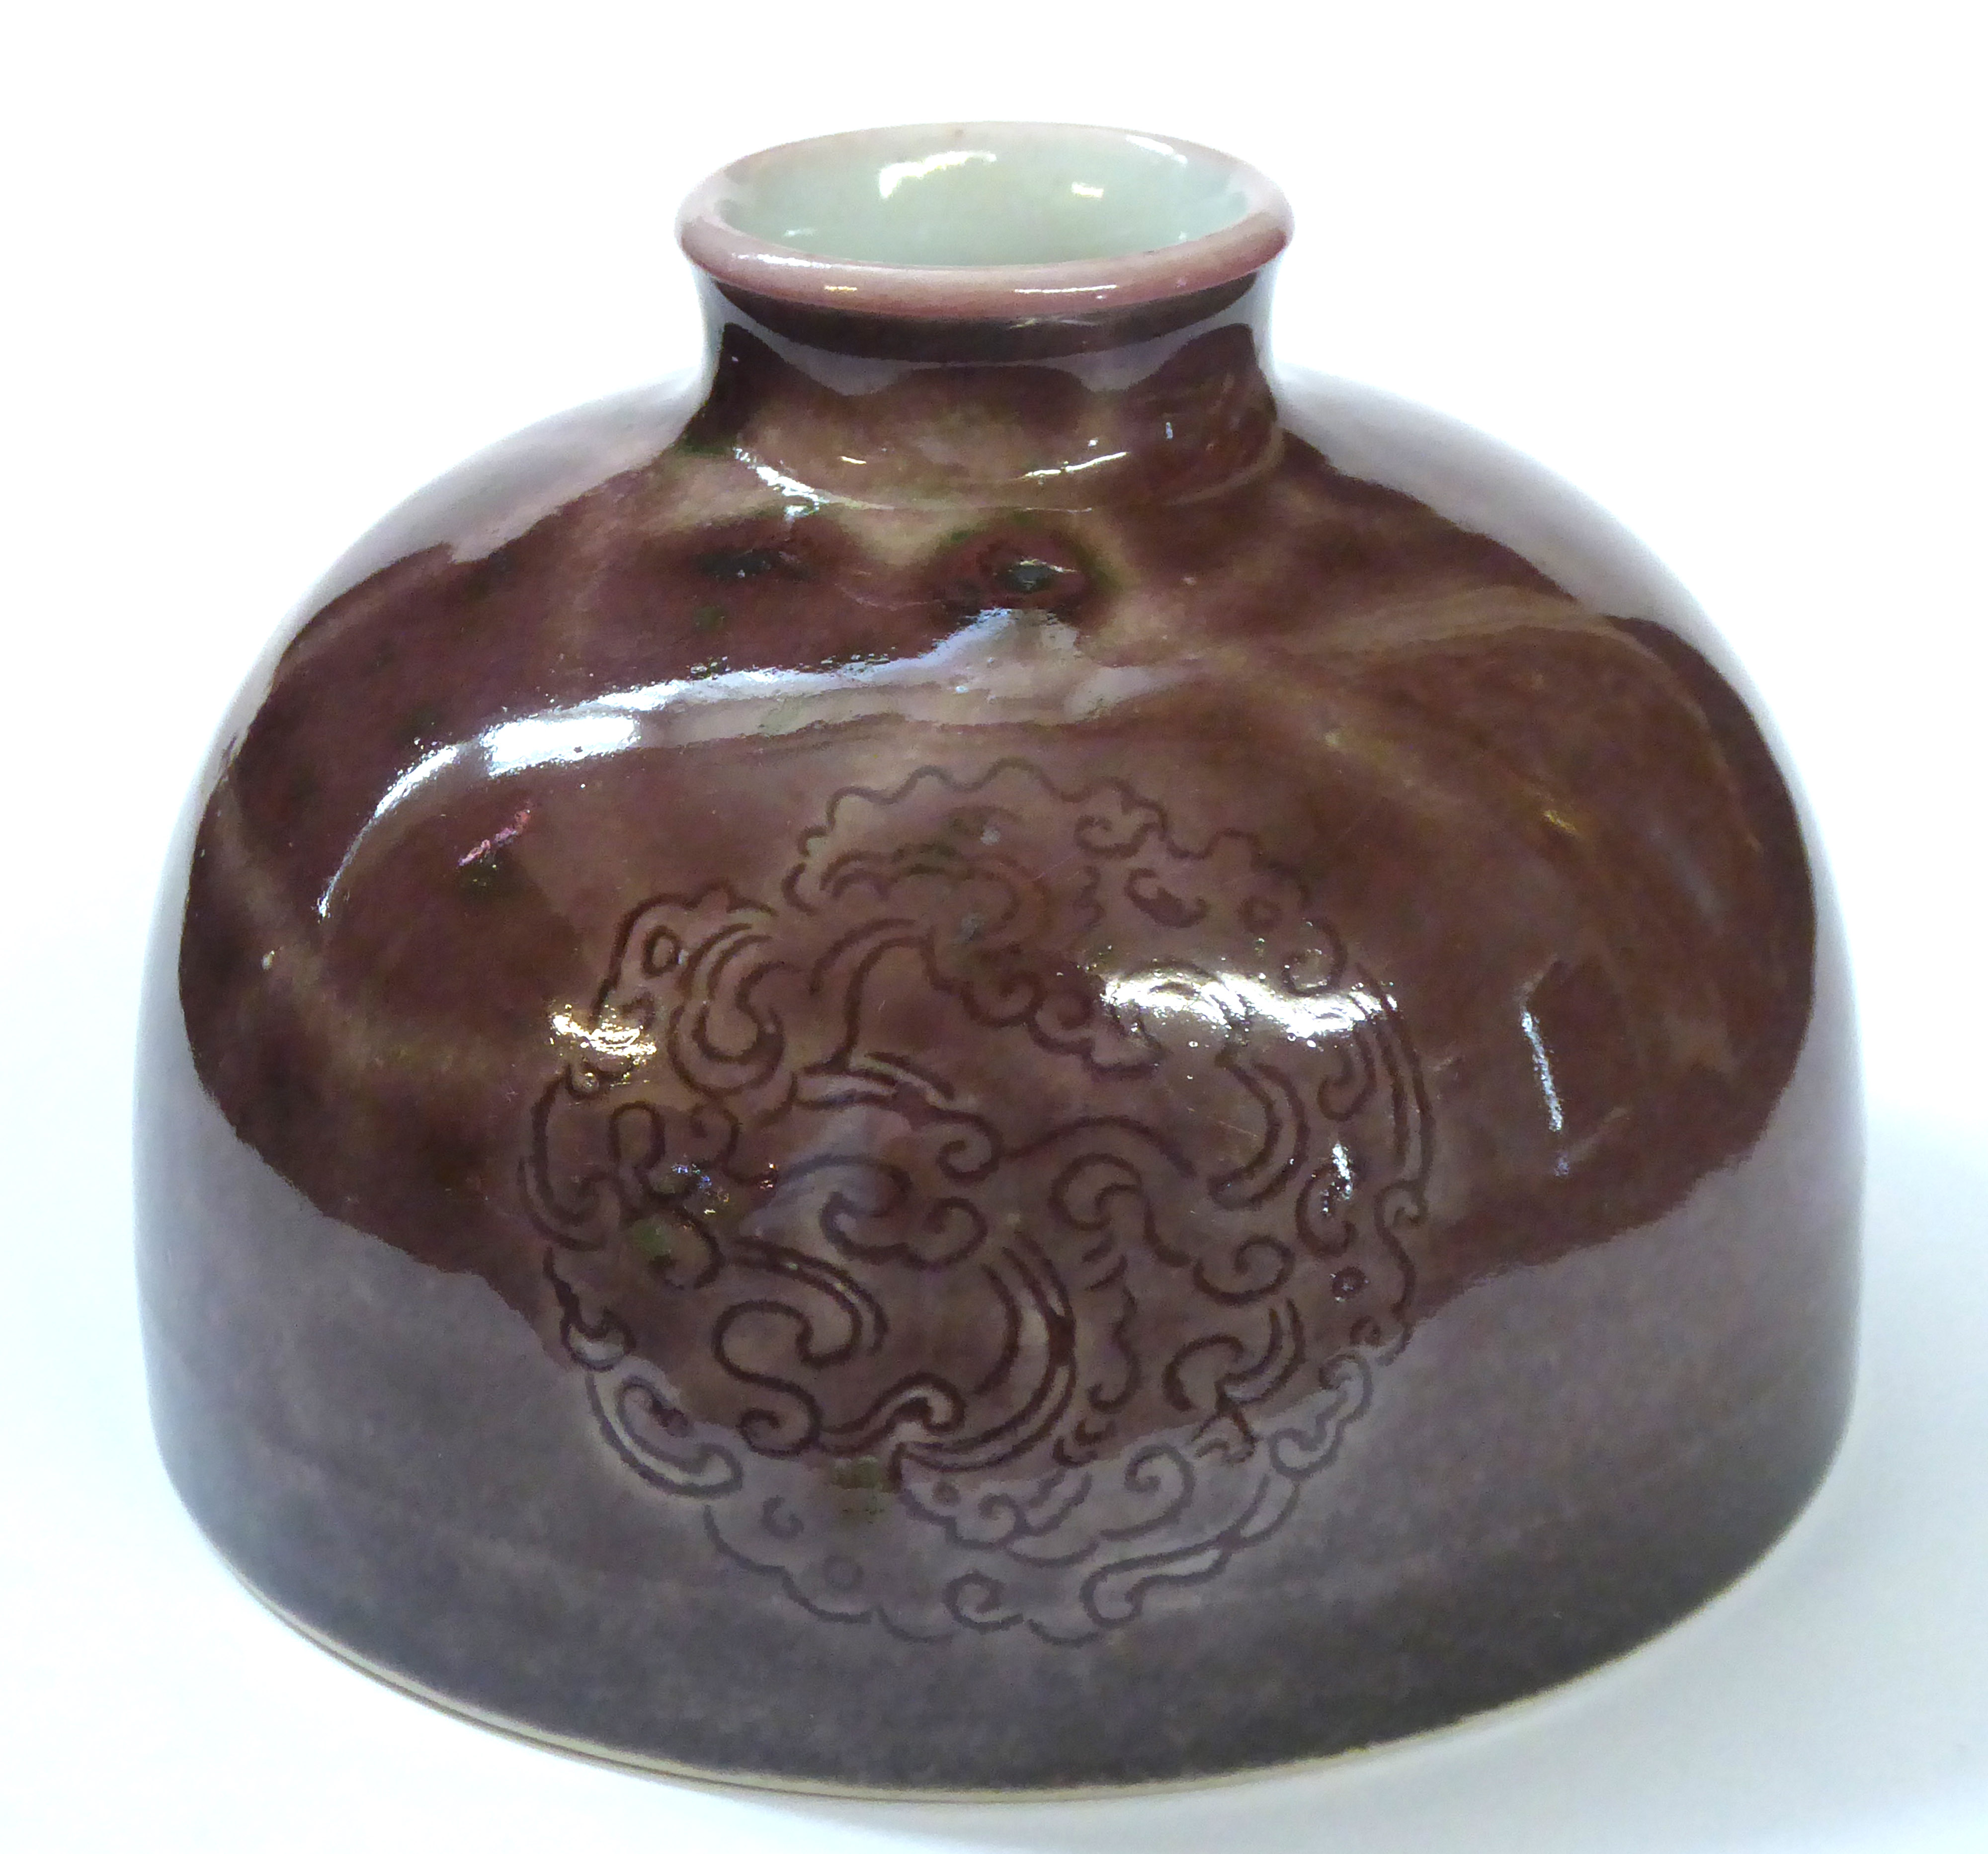 Lot 151 - A CHINESE PORCELAIN BEE HIVE BOTTLE WATER POT Having a peachbloom glaze, incised with three